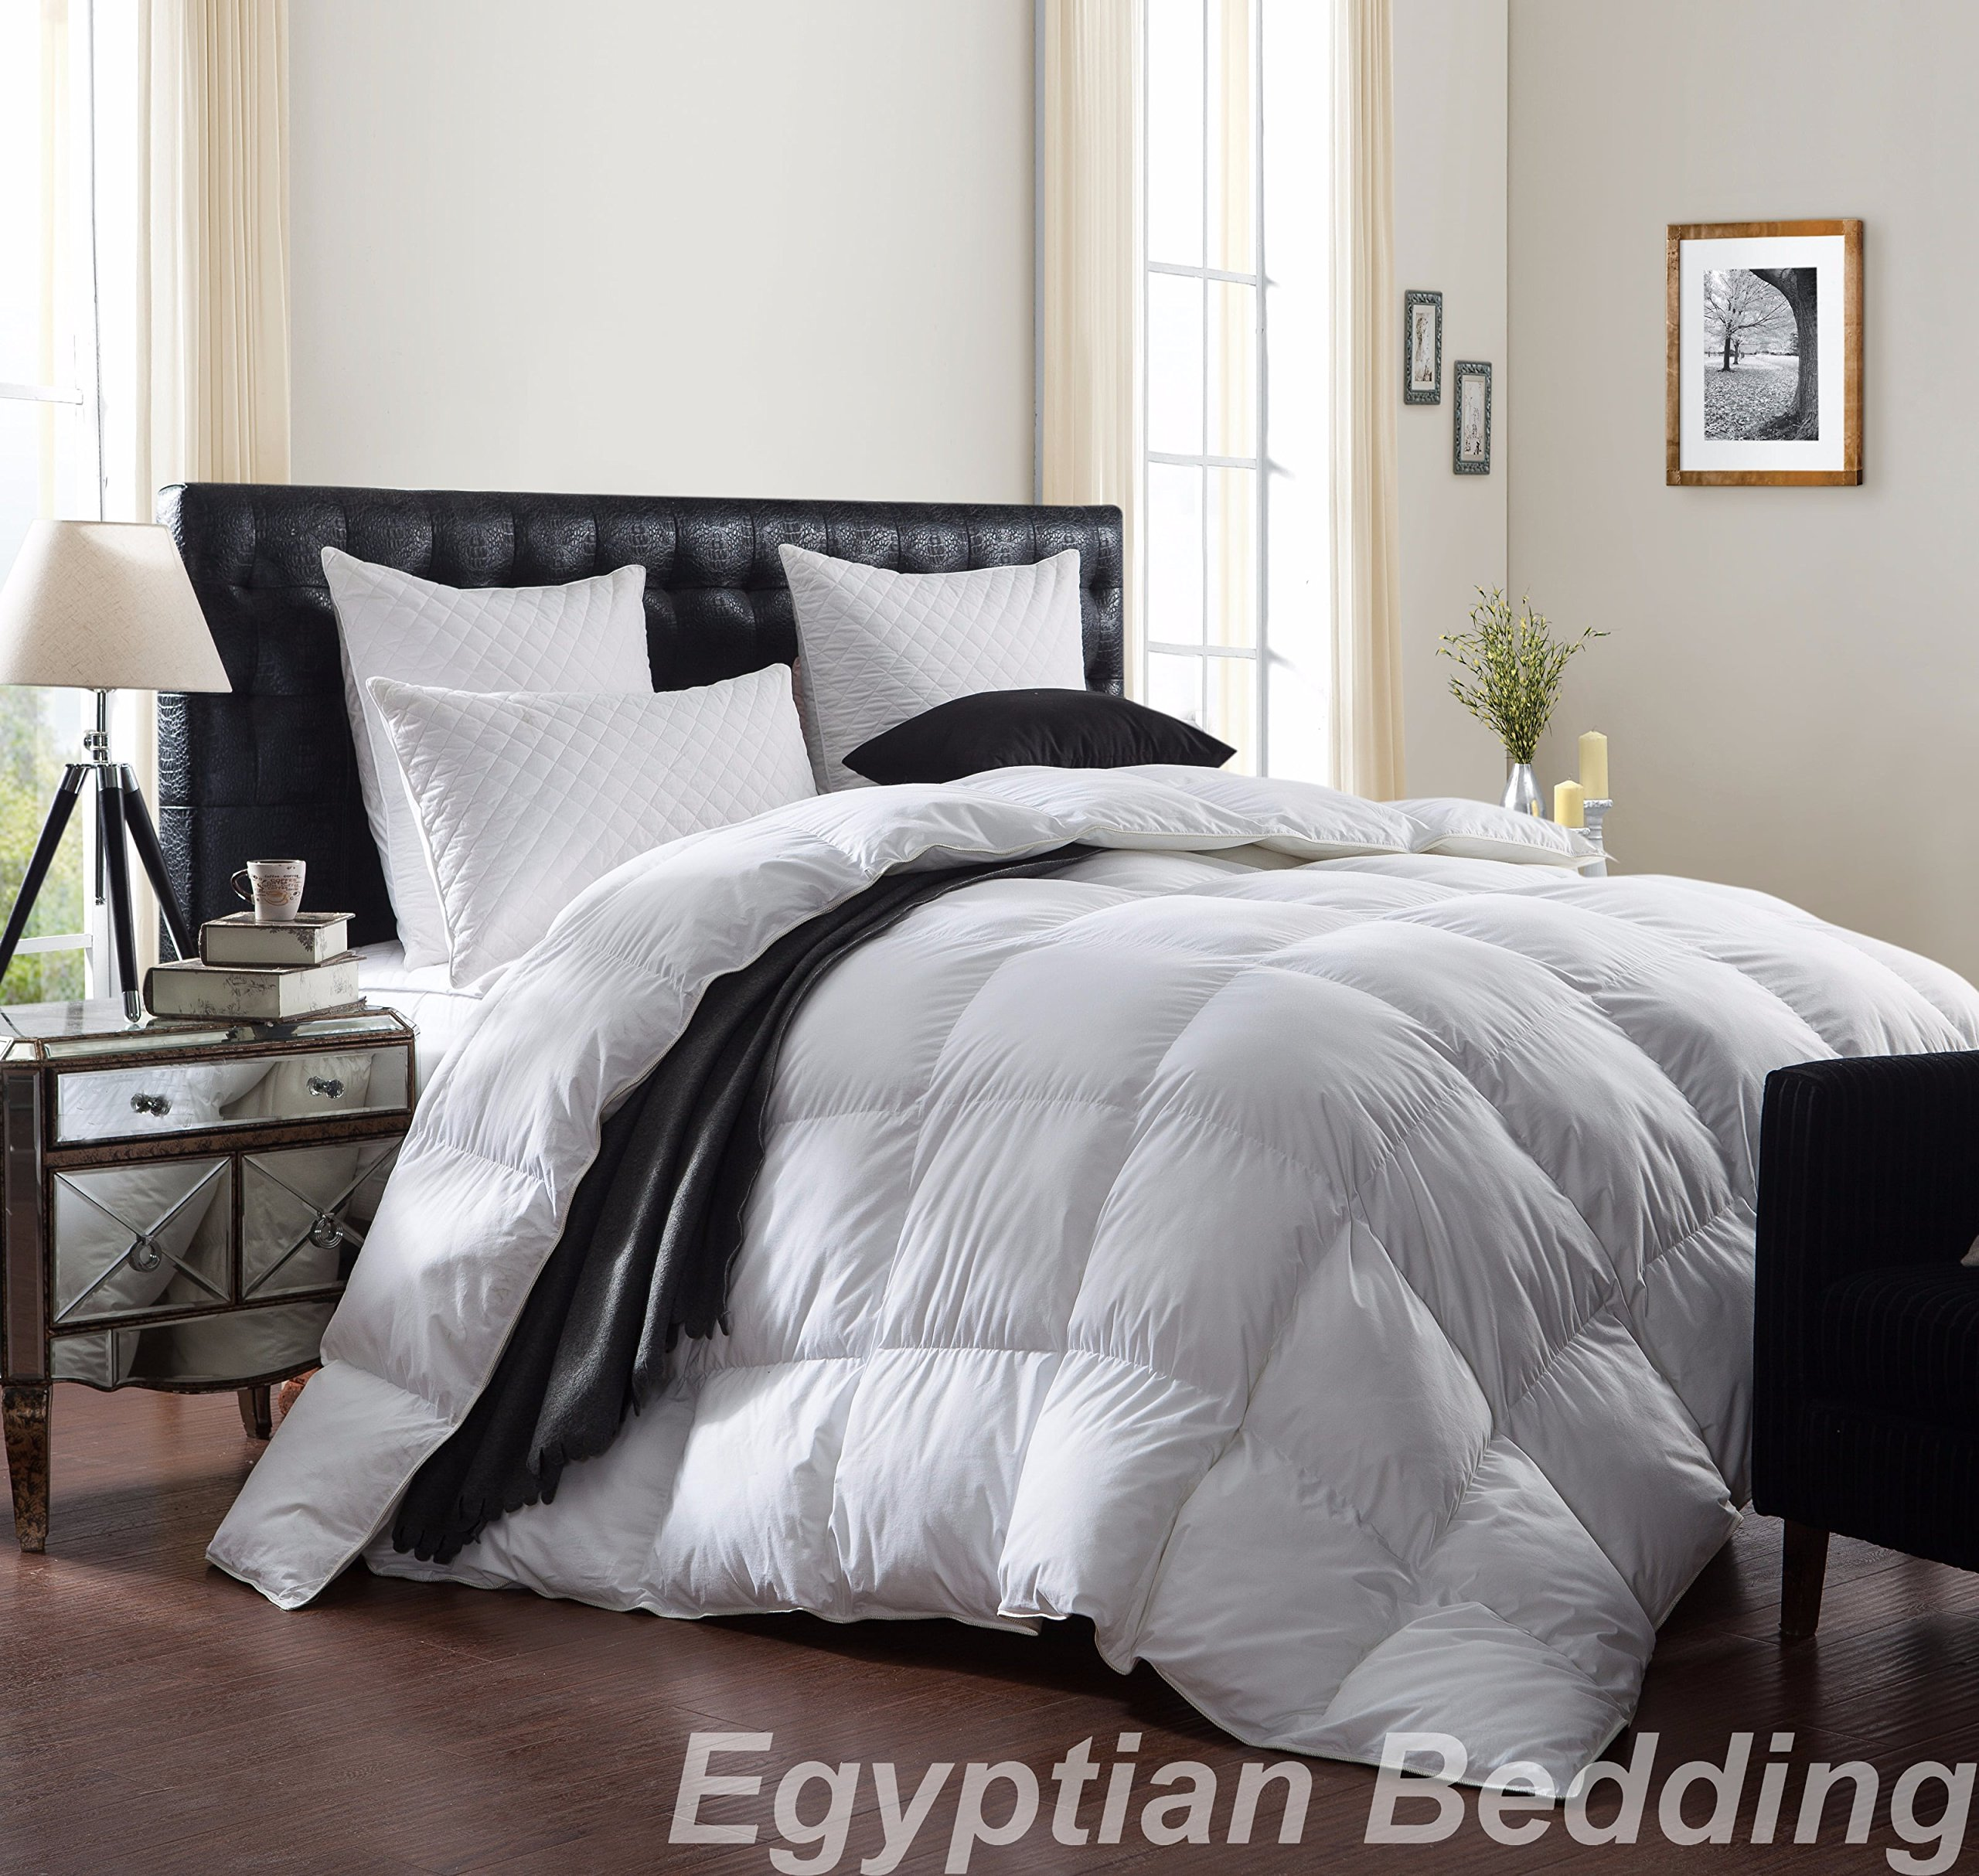 LUXURIOUS 1200 Thread Count GOOSE DOWN Comforter , Queen Size, 1200TC - 100% Egyptian Cotton Cover, 750 Fill Power, 50 Oz Fill Weight, White Color by Egyptian Bedding by Egyptian Bedding